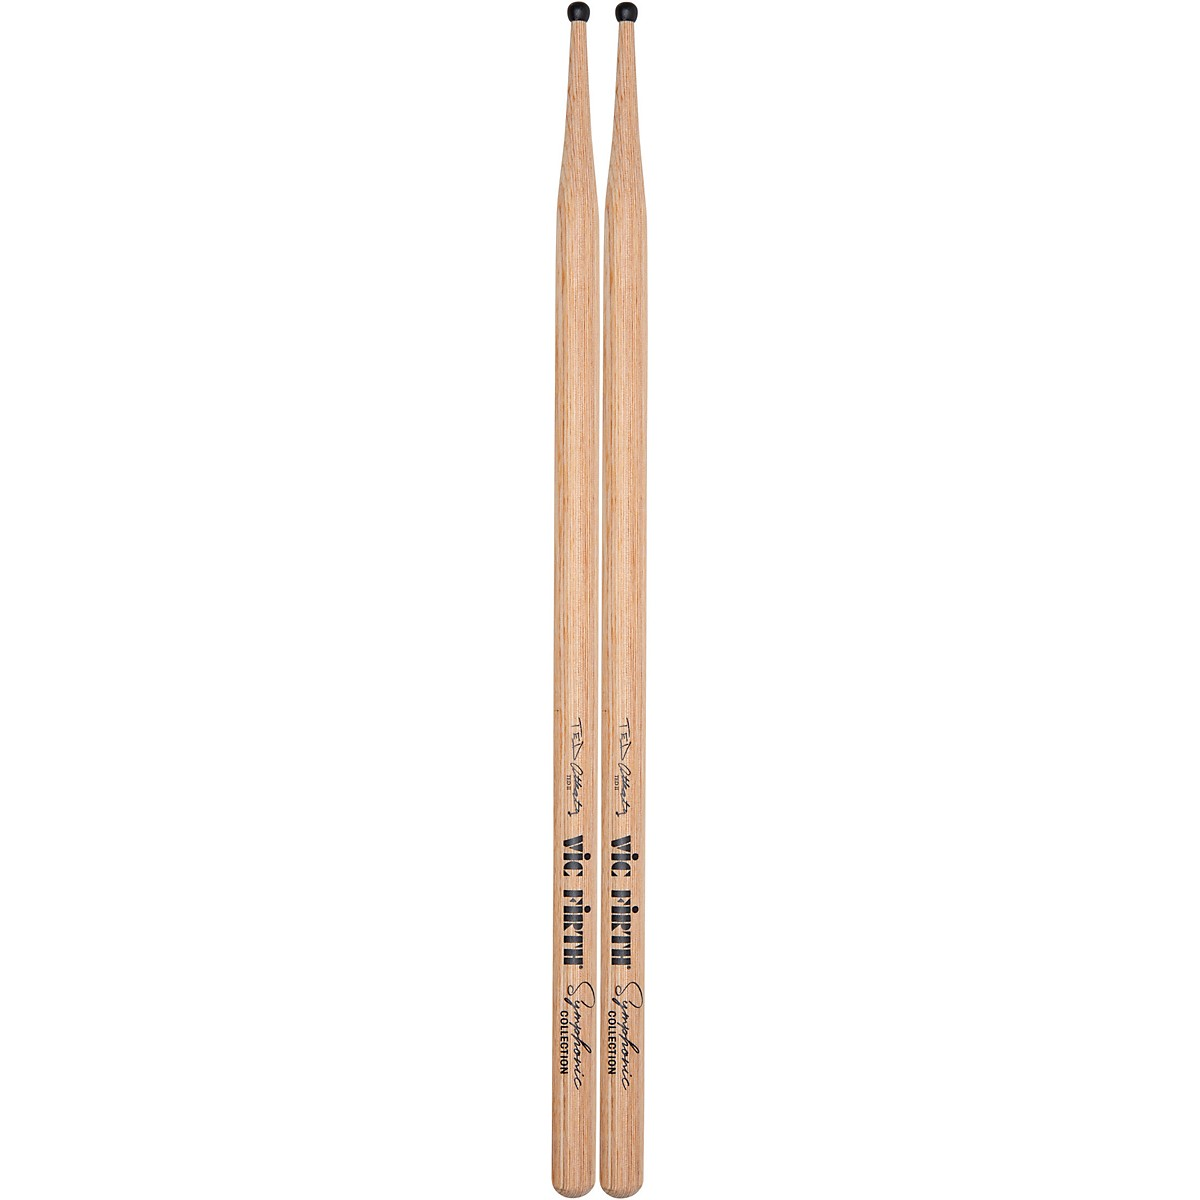 Vic Firth Symphonic Collection Laminated Birch Ted Atkatz Signature Drumstick